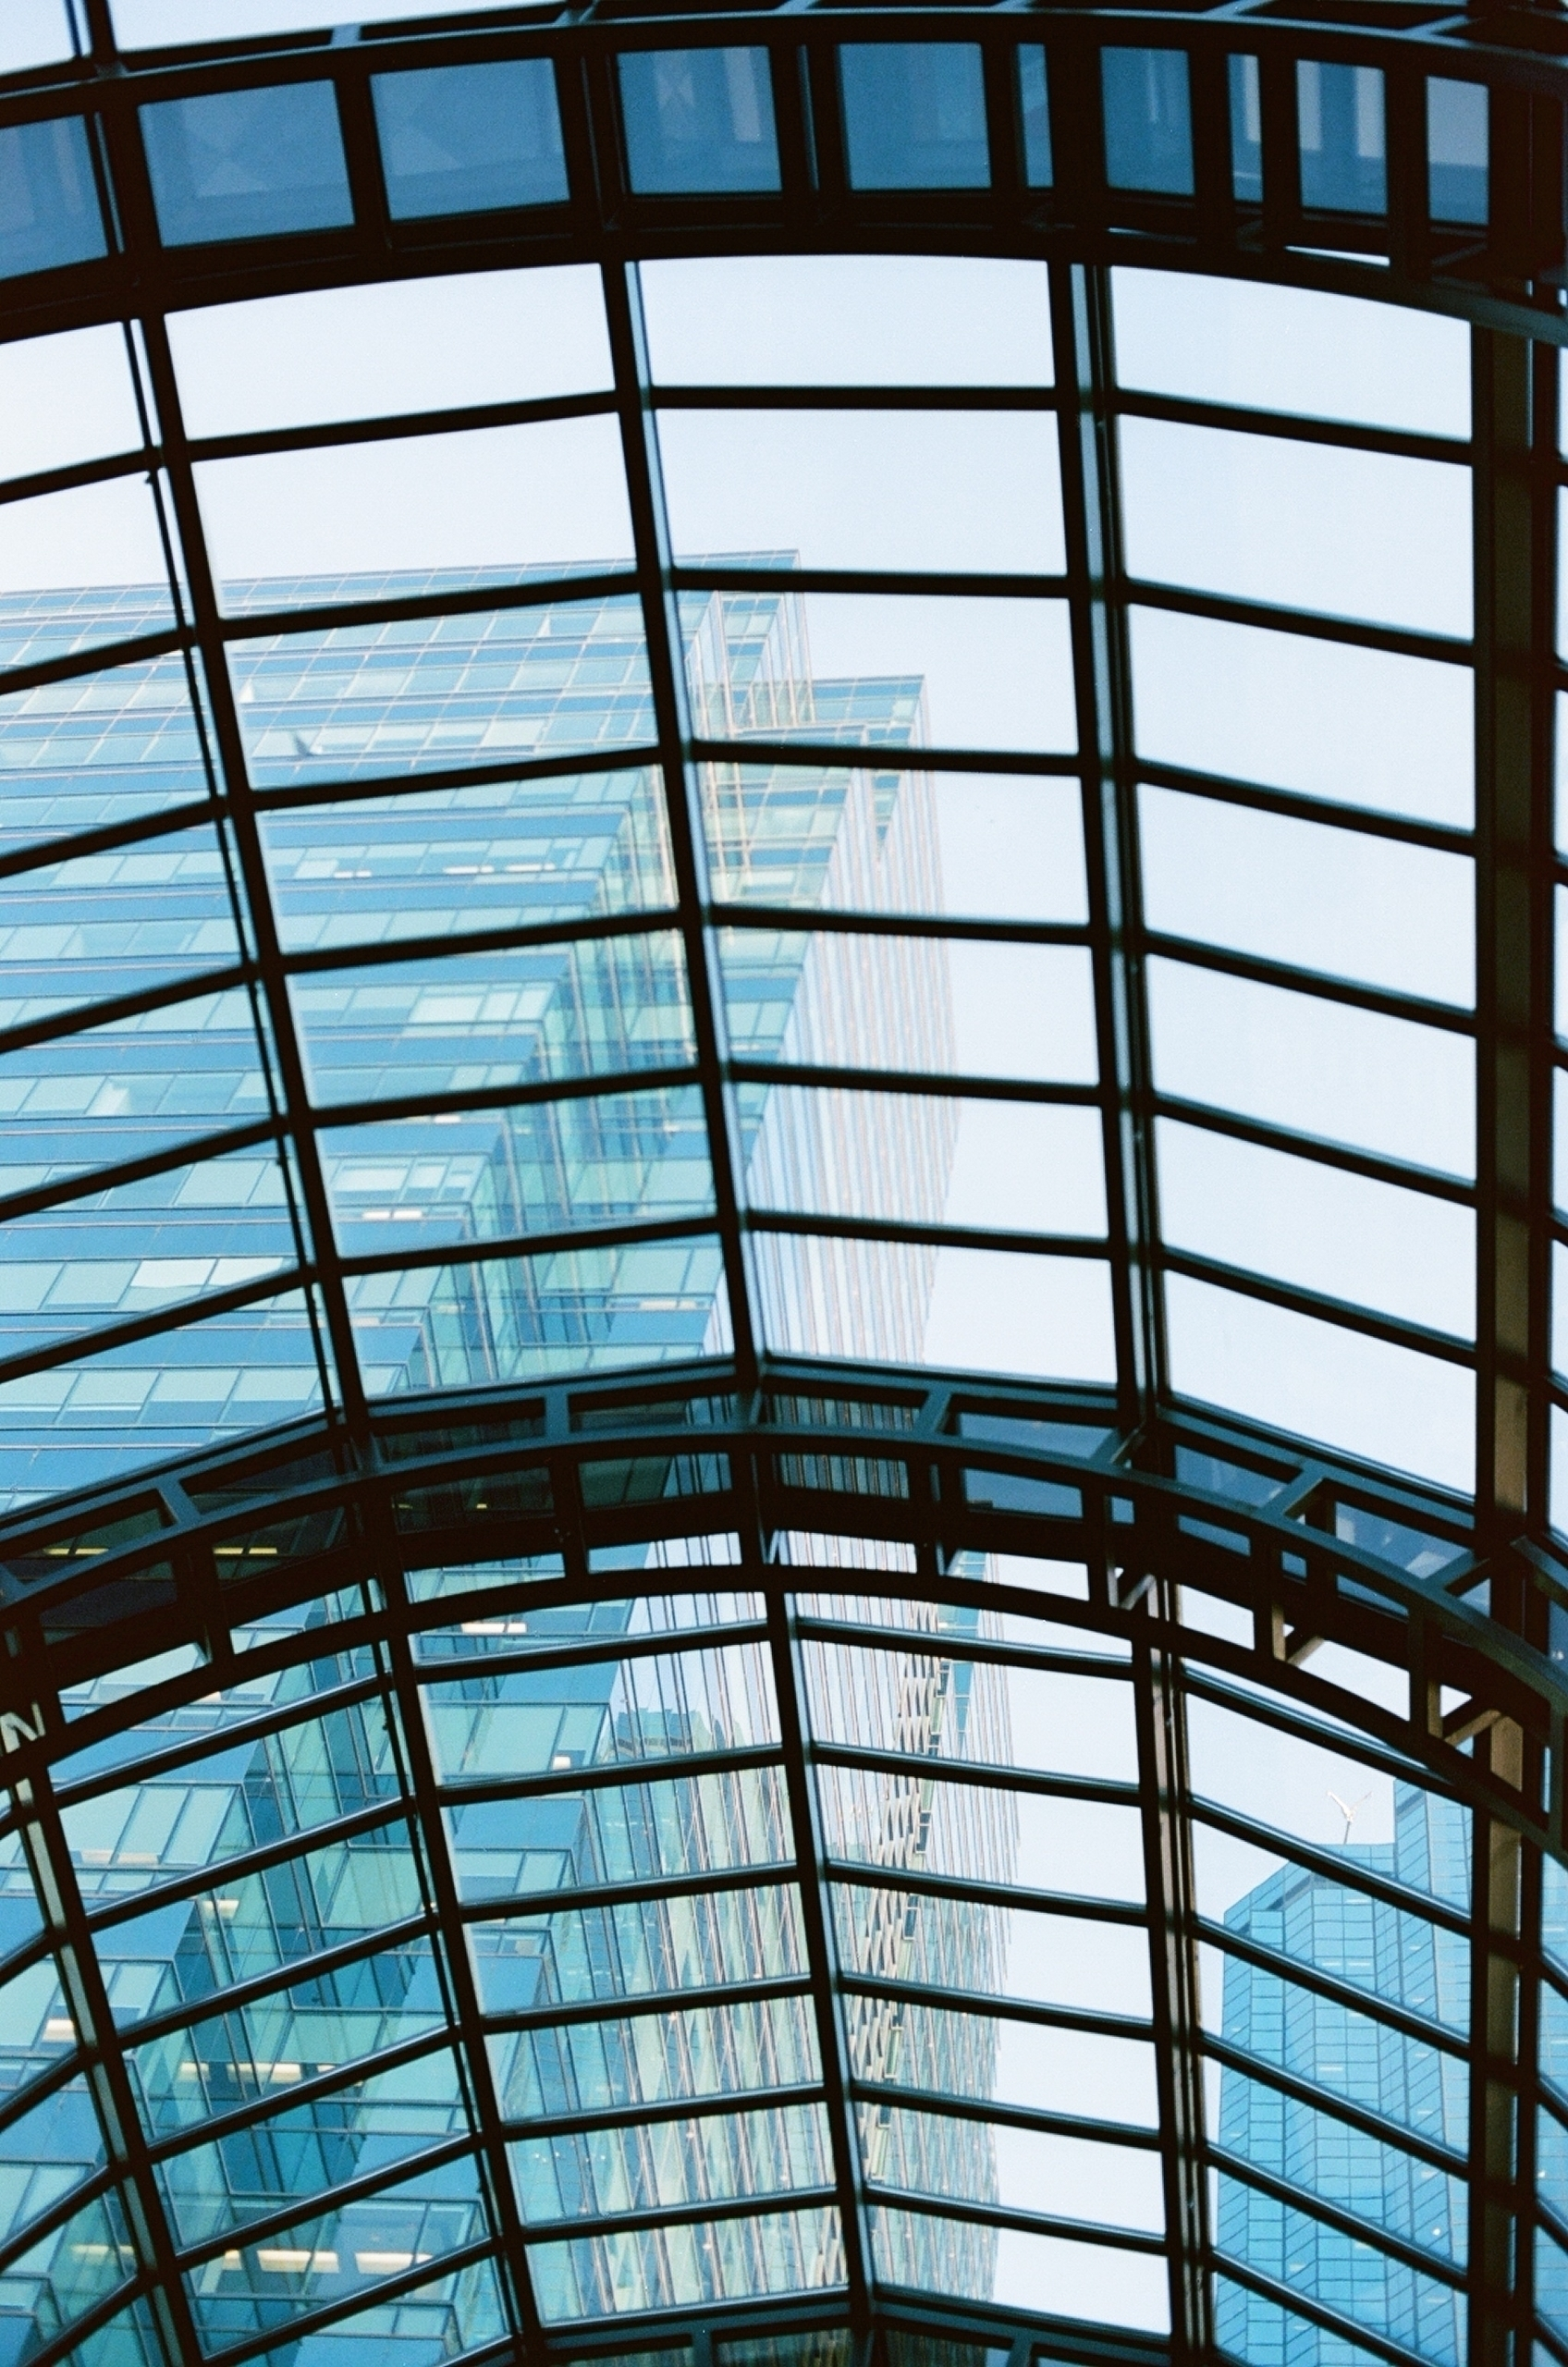 Glass Ceiling - film, filmphotography - alaskapalms | ello